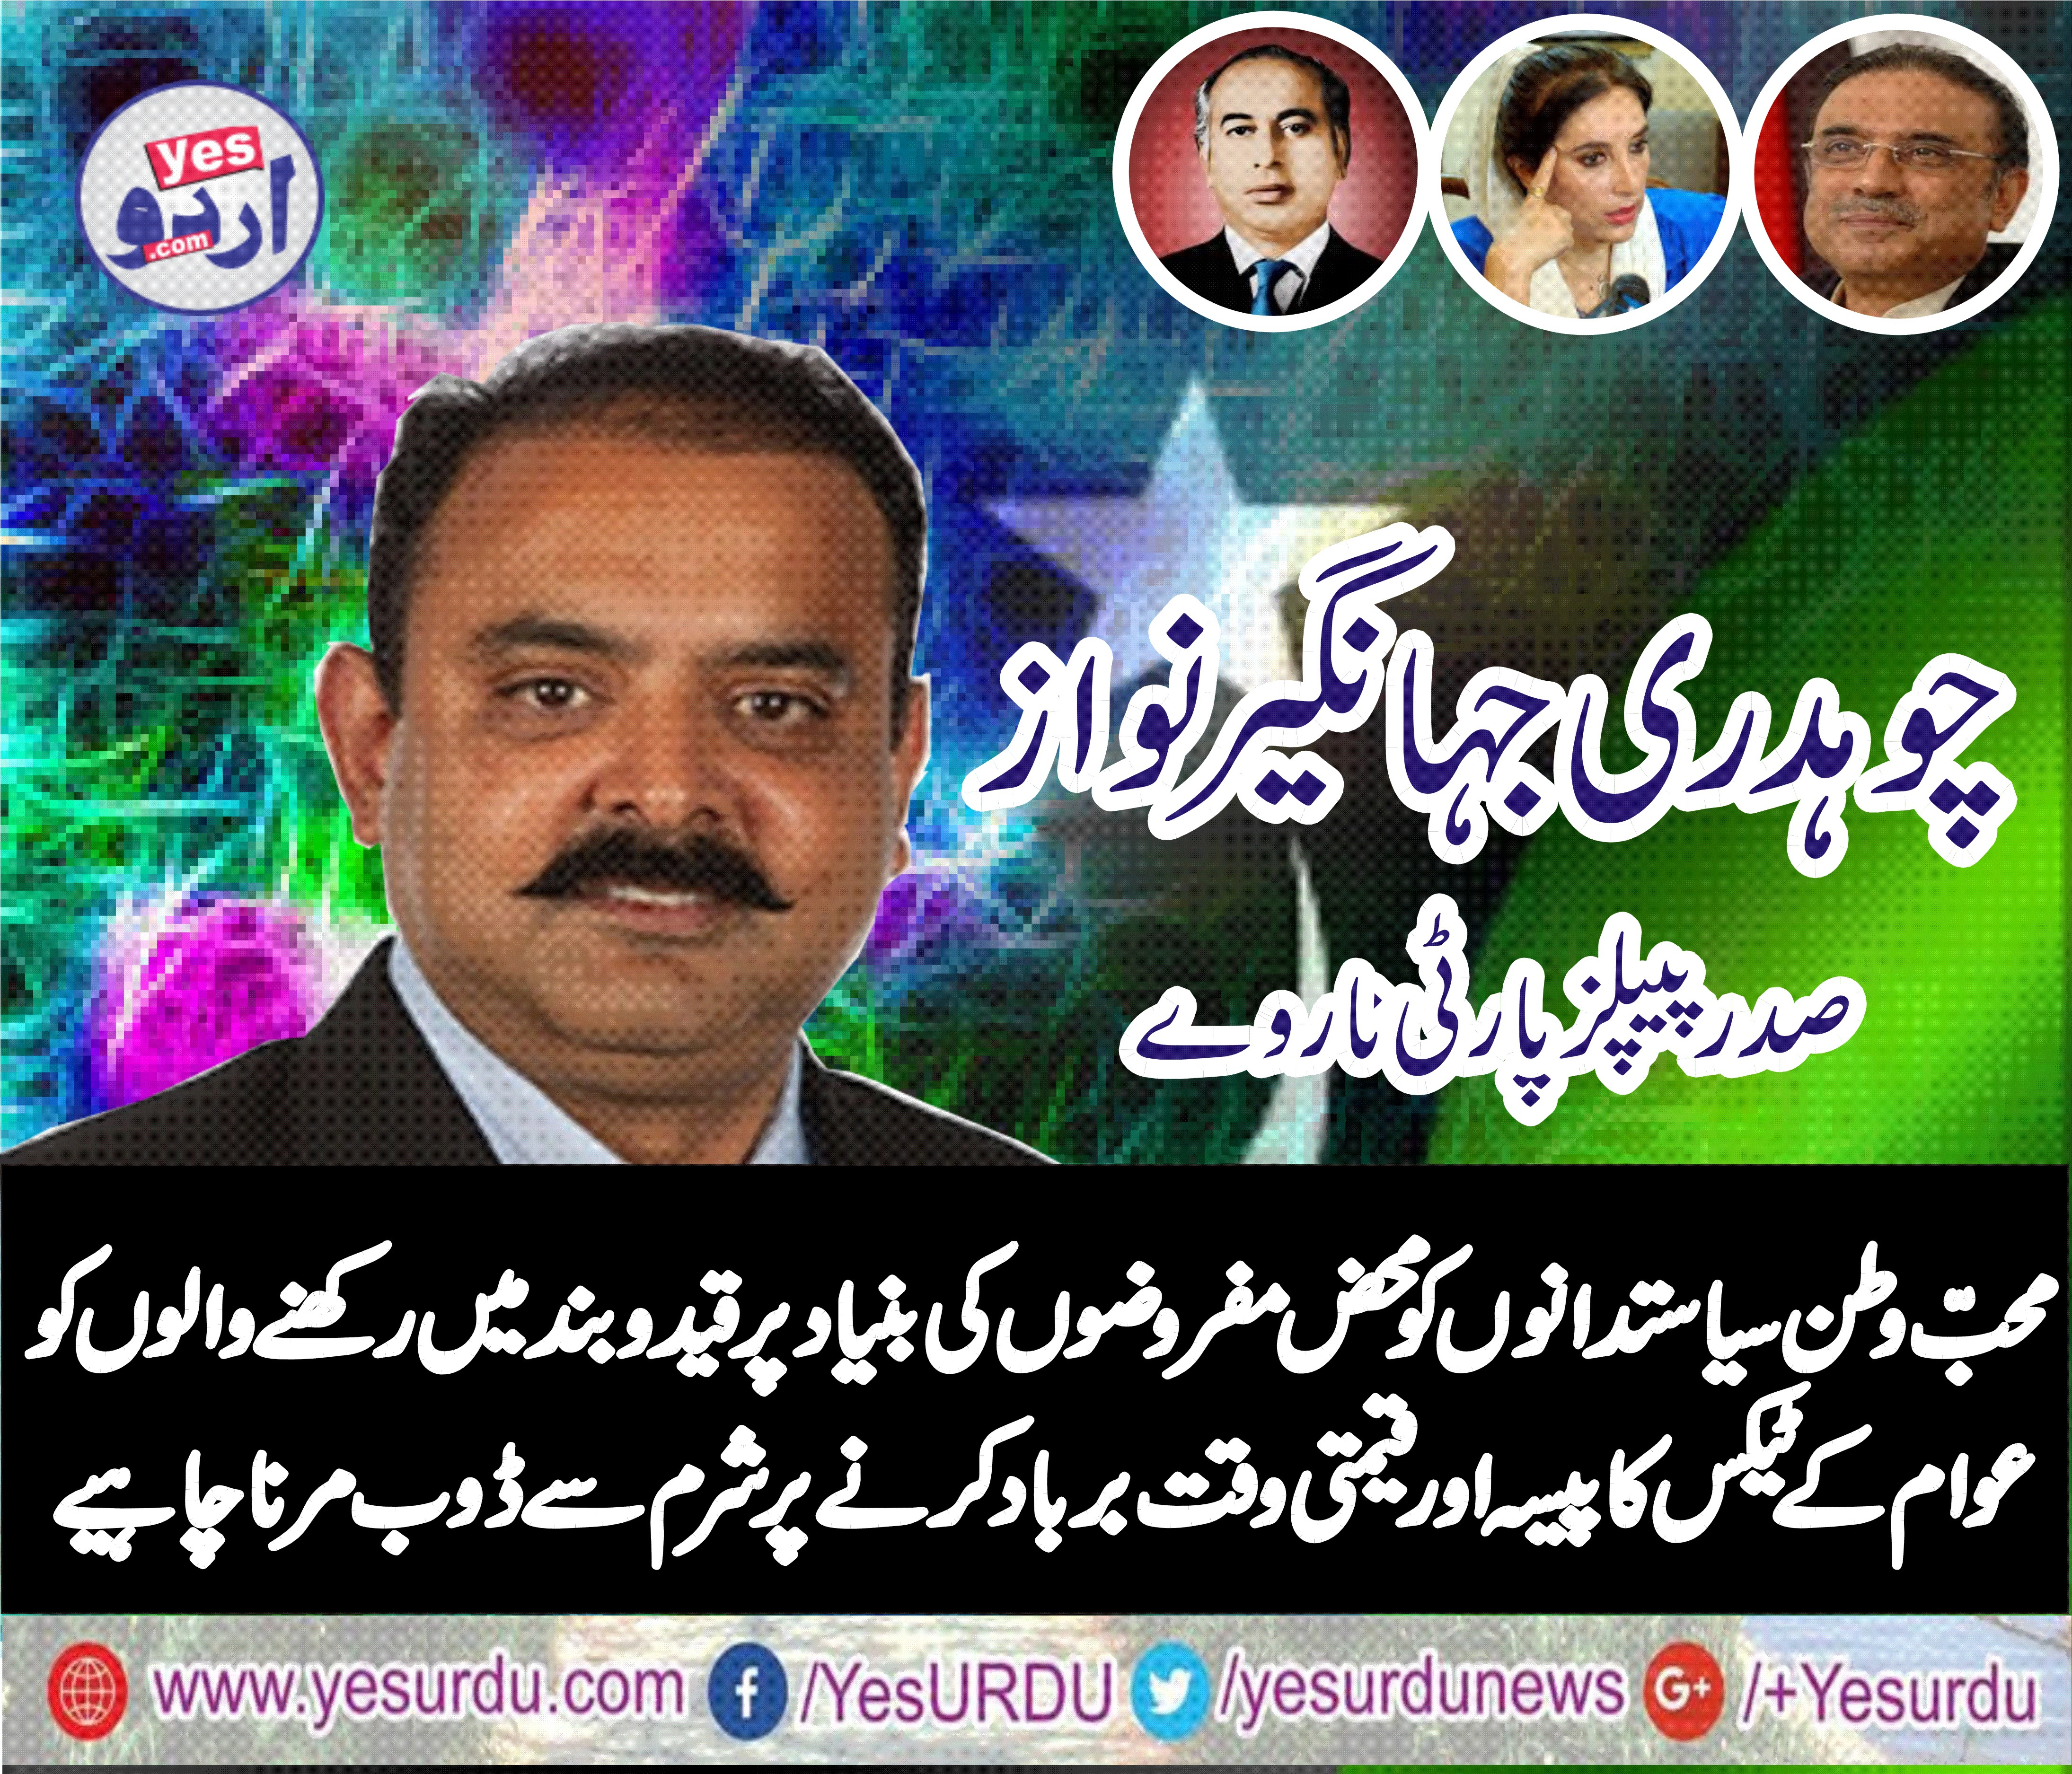 CH JEHANGIR NAWAZ, PRESIDENT, PPP, NORWAY, CONDENMED, GOVT, DISQUALIFIED, ACTS